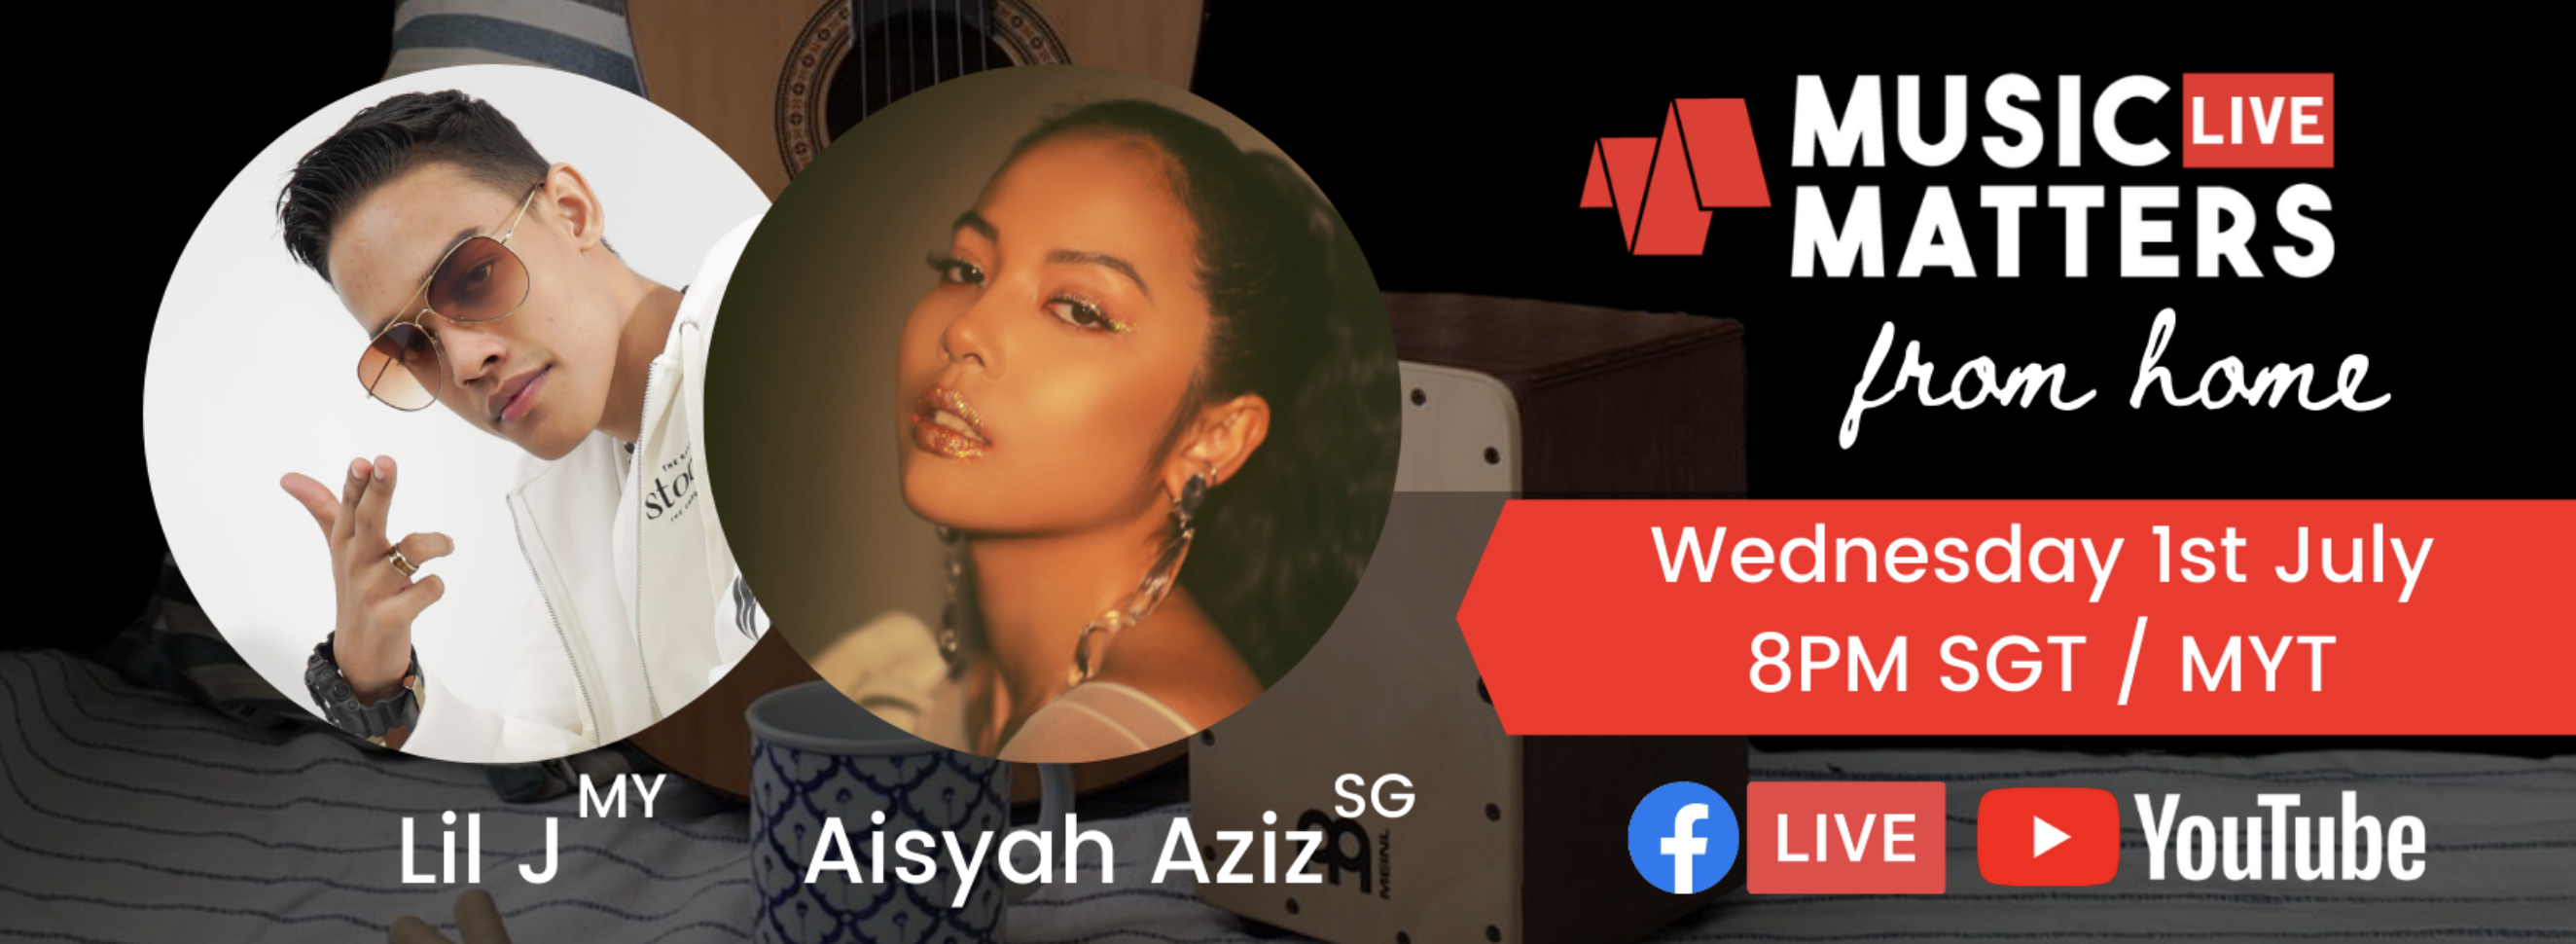 Music Matters Live To Feature Malaysia's Lil J and Singapore's Aisyah Aziz